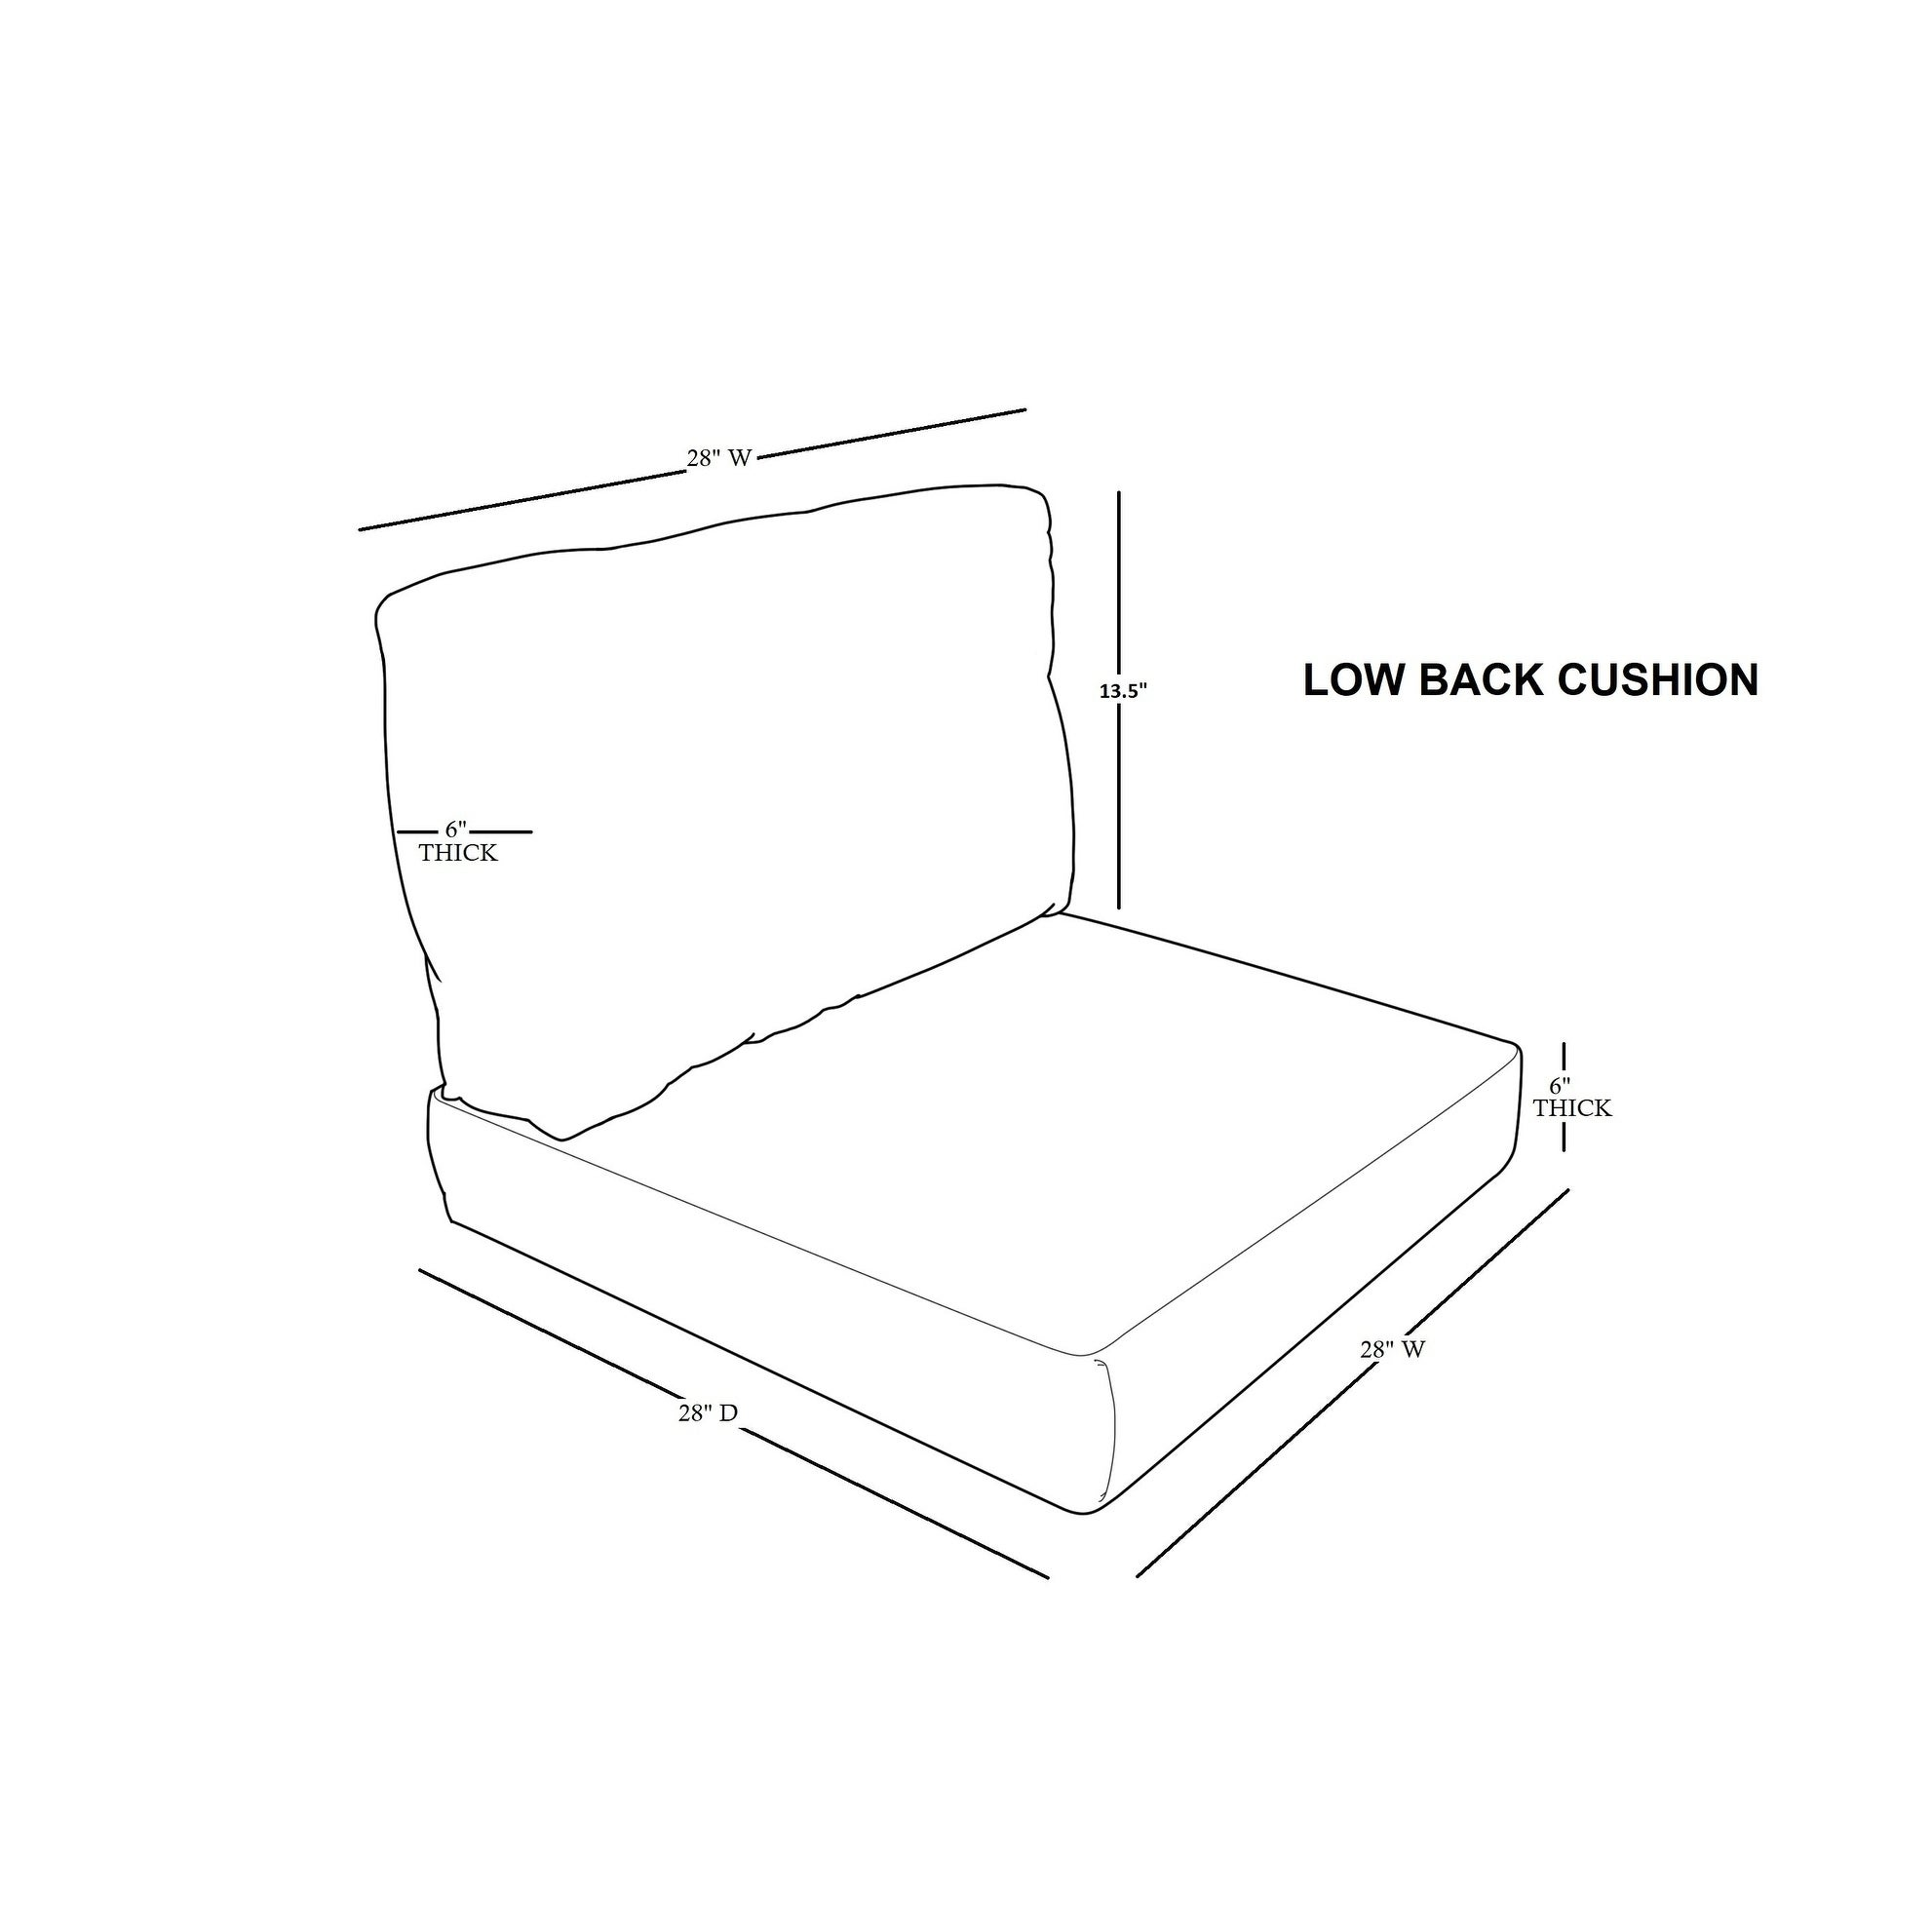 Phenomenal Covers For Low Back Chair Cushions 6 Inches Thick Gmtry Best Dining Table And Chair Ideas Images Gmtryco